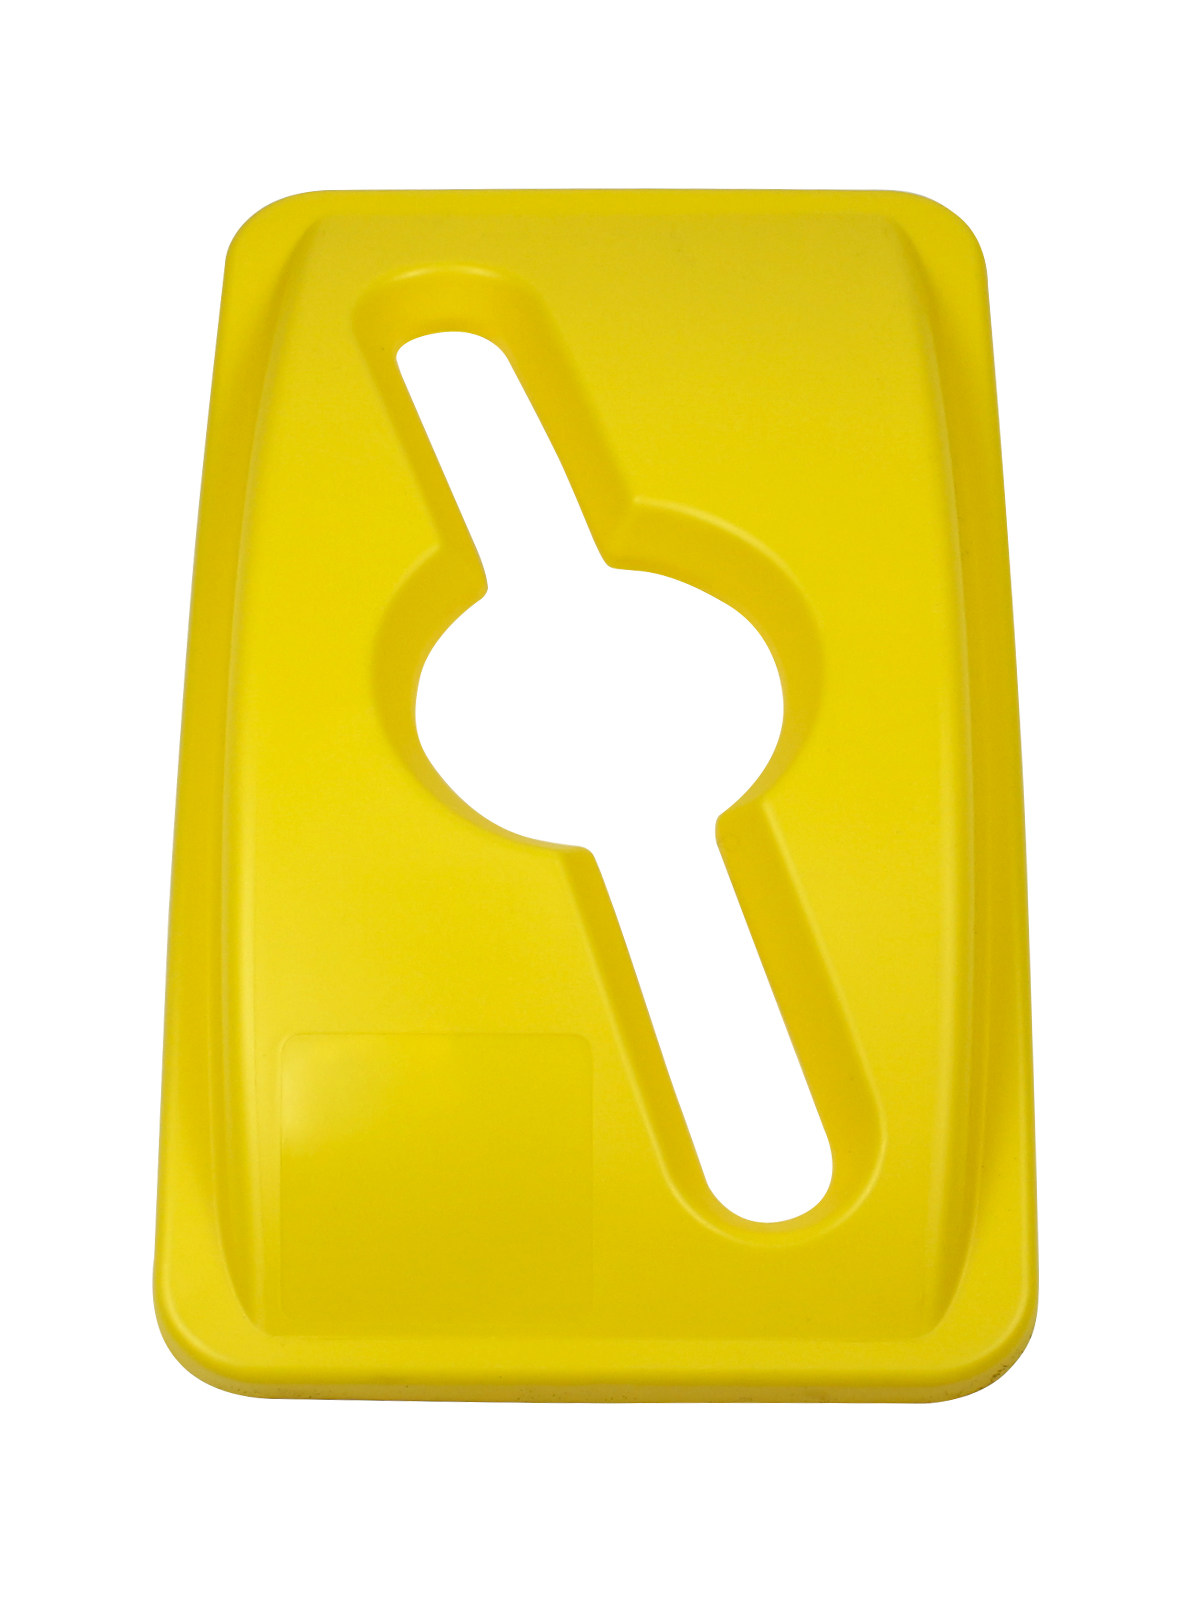 WASTE WATCHER - Lid - Mixed - Yellow